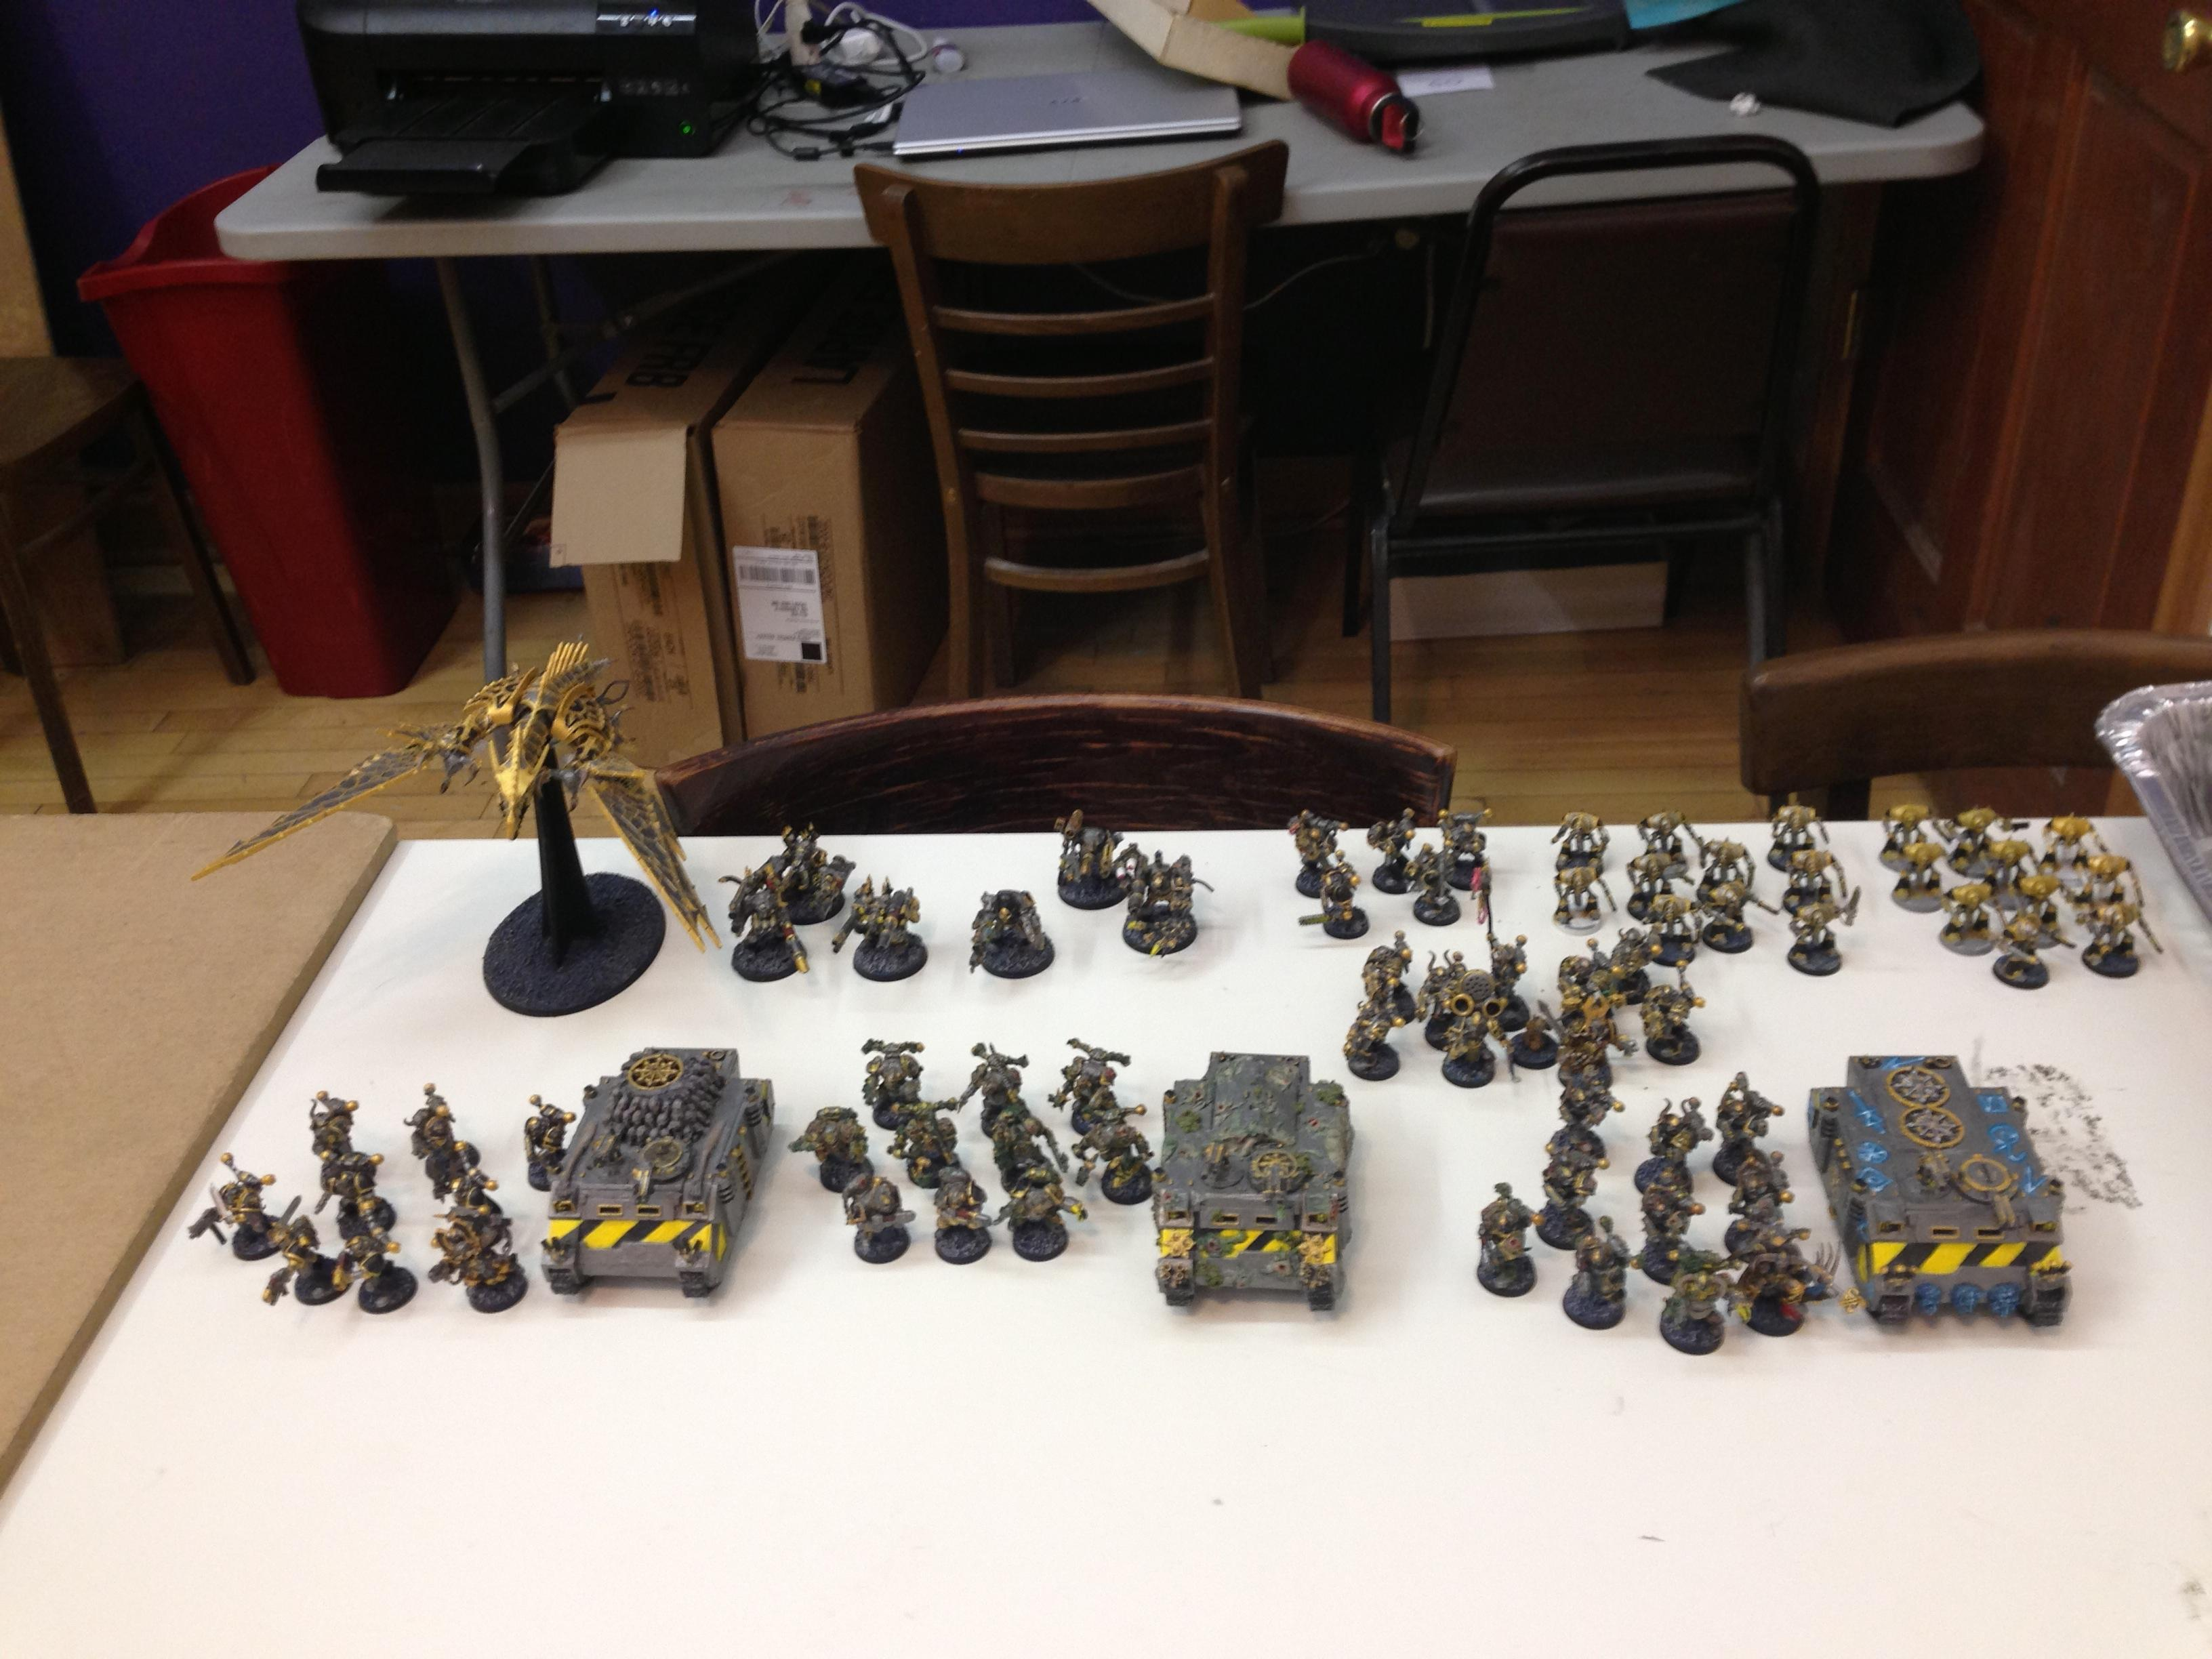 Chaos, Chaos Lord, Chaos Space Marines, Heldrake, Iron Warriors, Kharn, Noise Marines, Obliterators, Plague Marines, Rhinos